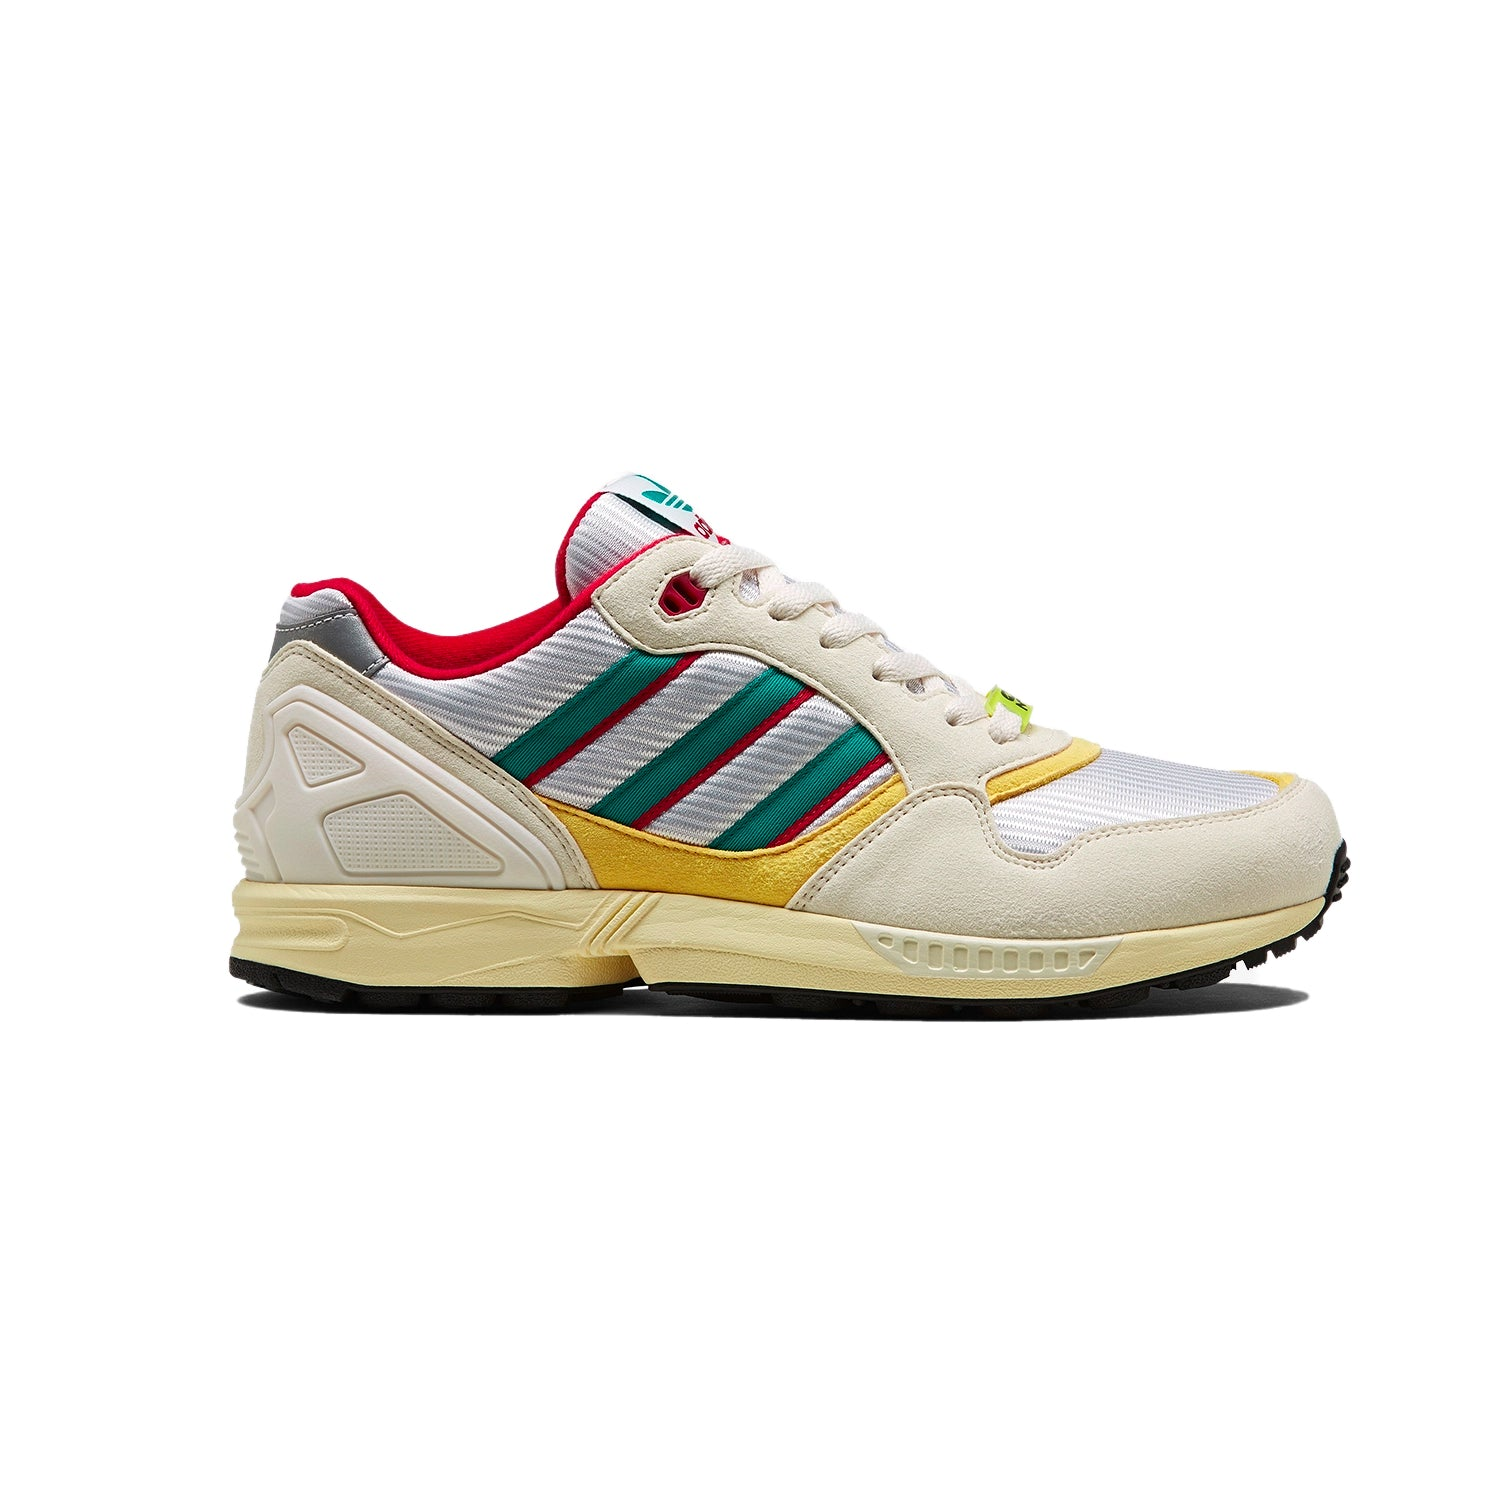 ZX 6000 S